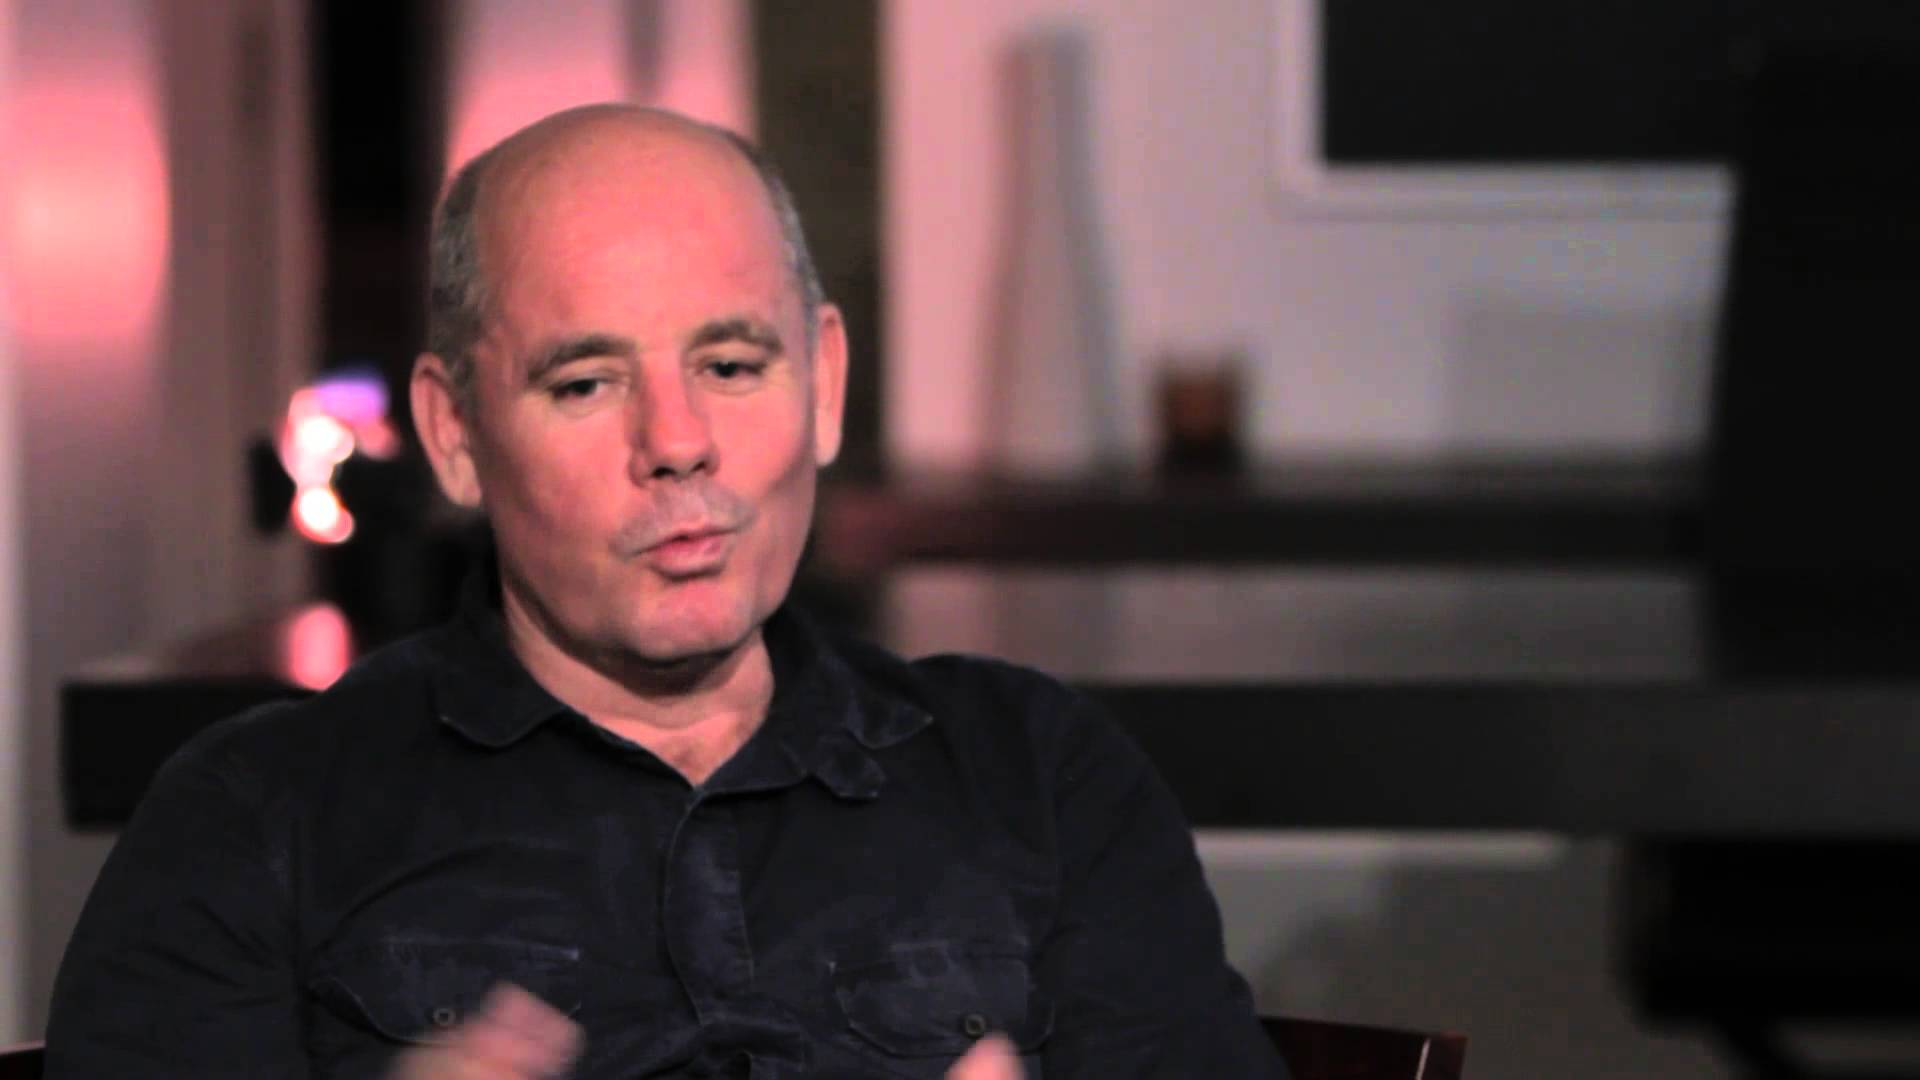 Velocity interview with Gary Clarke on vision